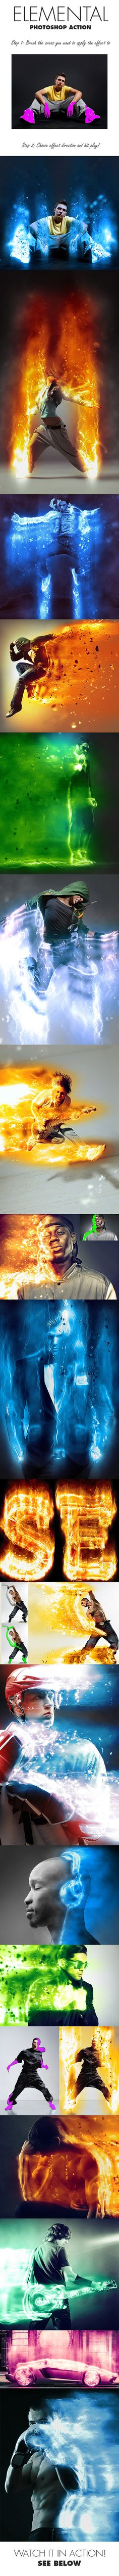 Elemental Photoshop Action - Photo Effects Actions